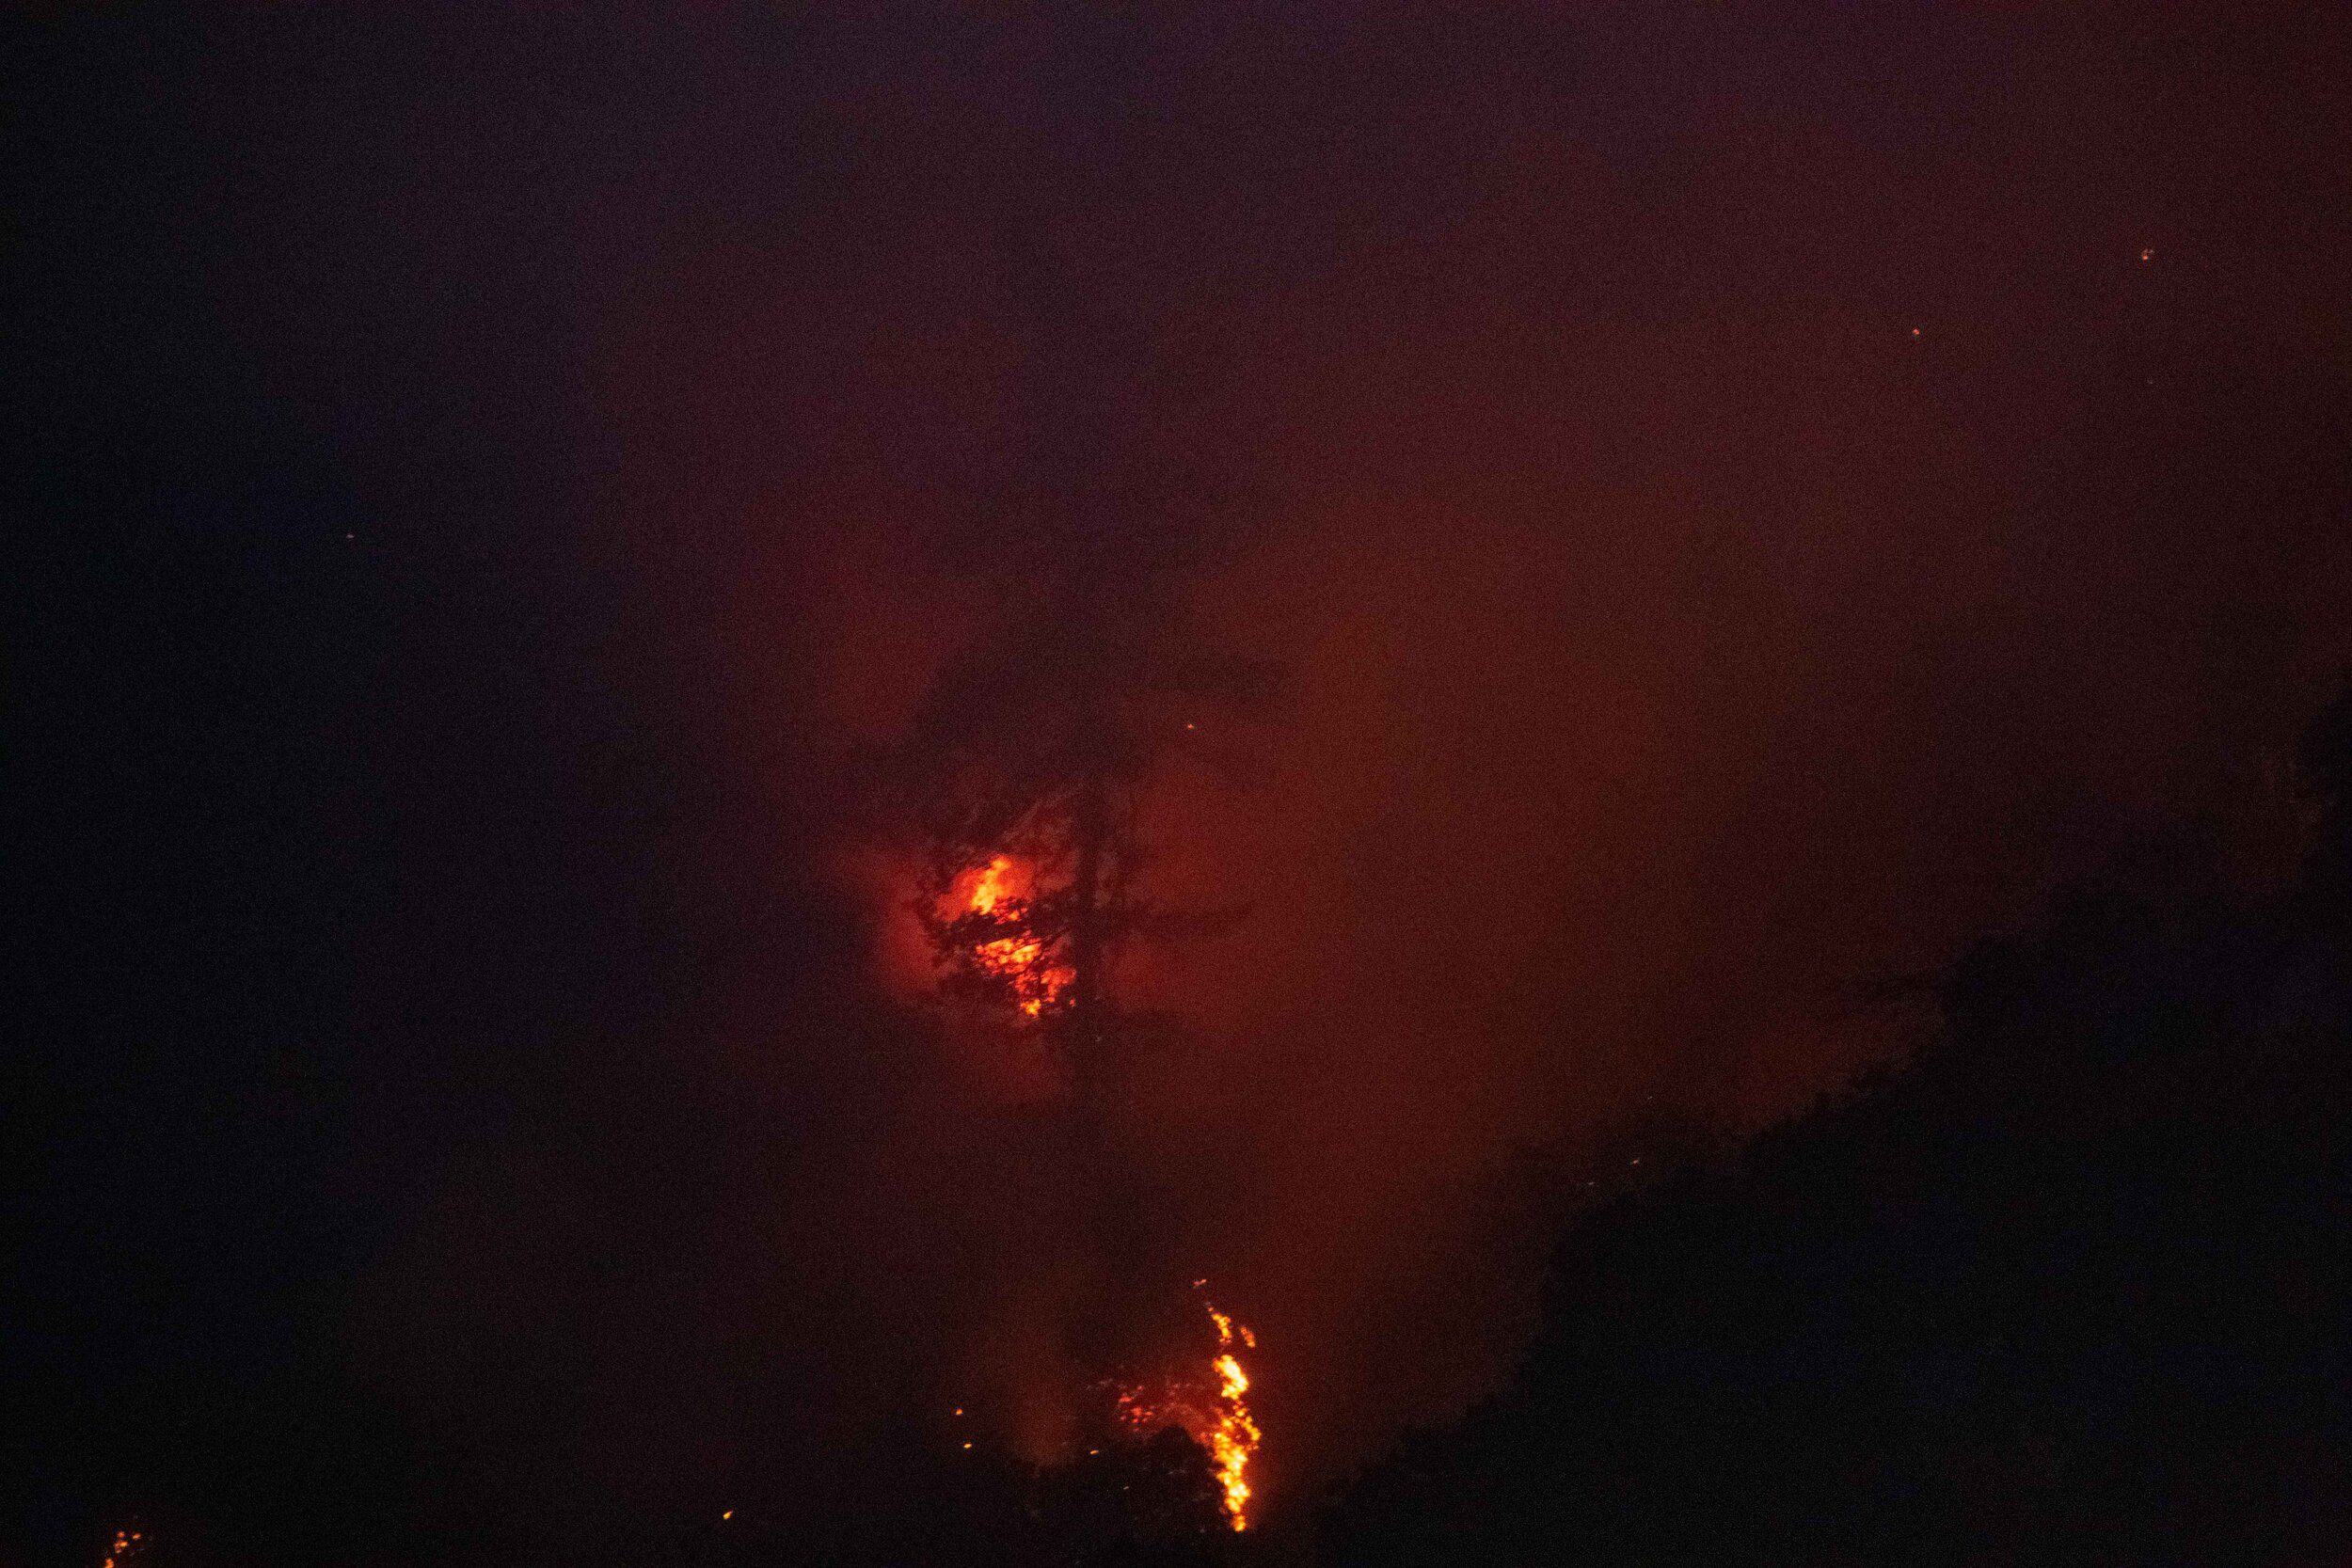 A tree dimly illuminated by a portion of the Saddlerige fire just off interstate 5 near Newhall Calif. on Friday, Oct. 11 2019. (Conner Savage/The Corsair)